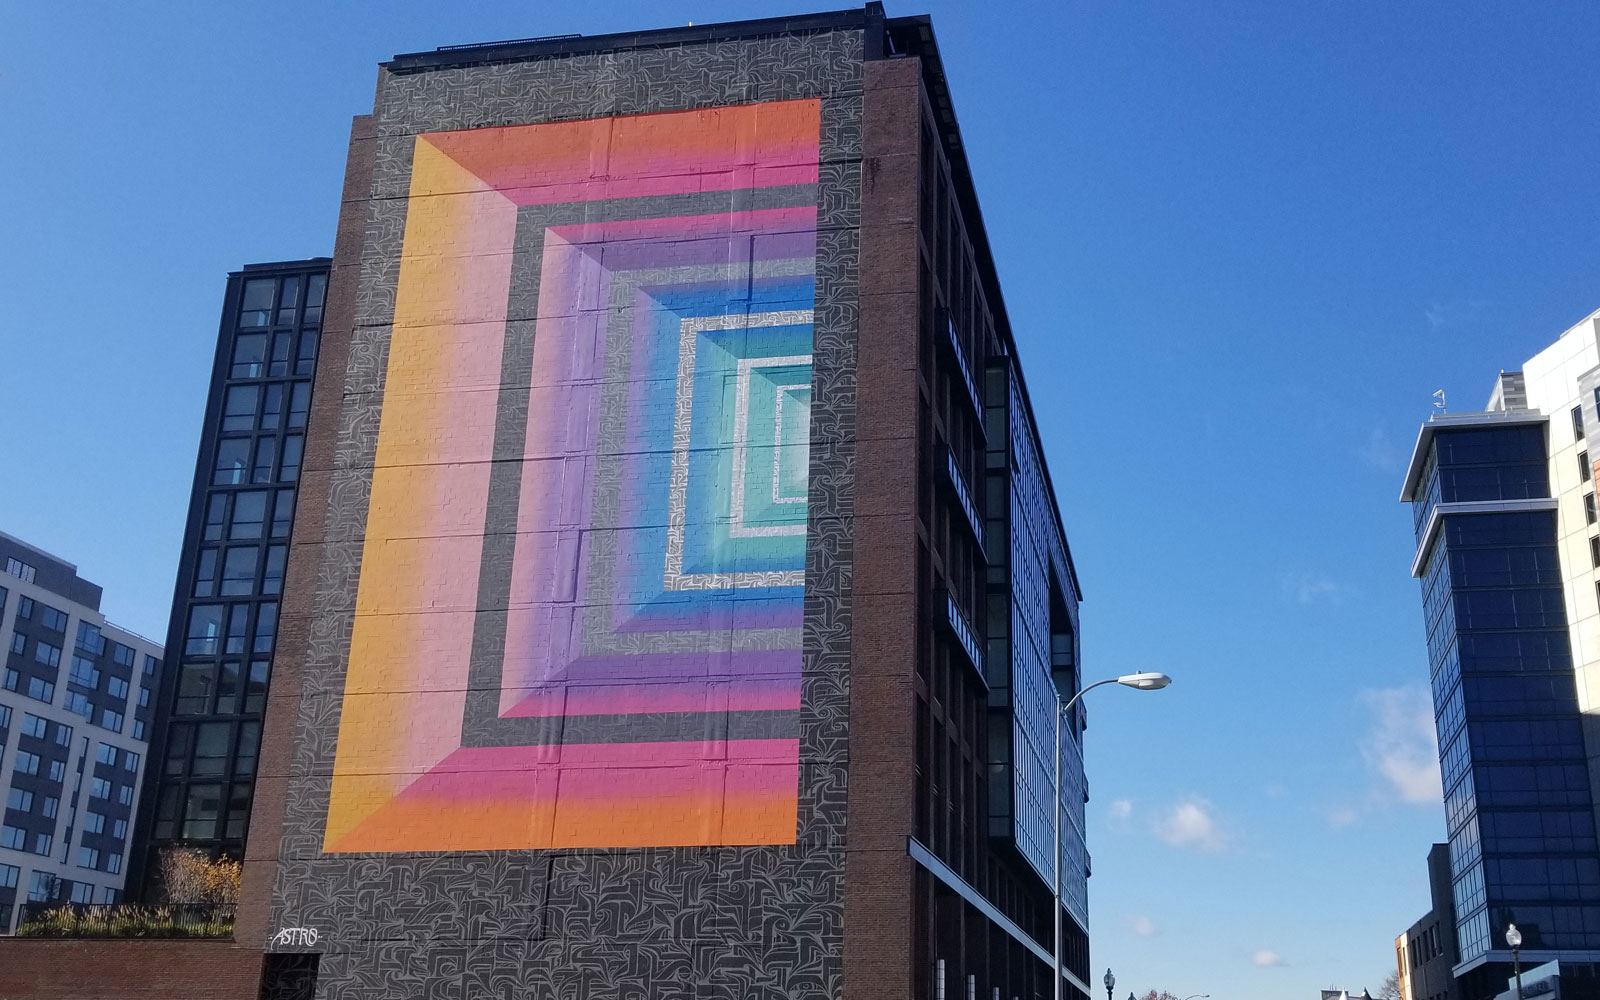 NOMA'S NEWEST MURAL AT THE BELGARD